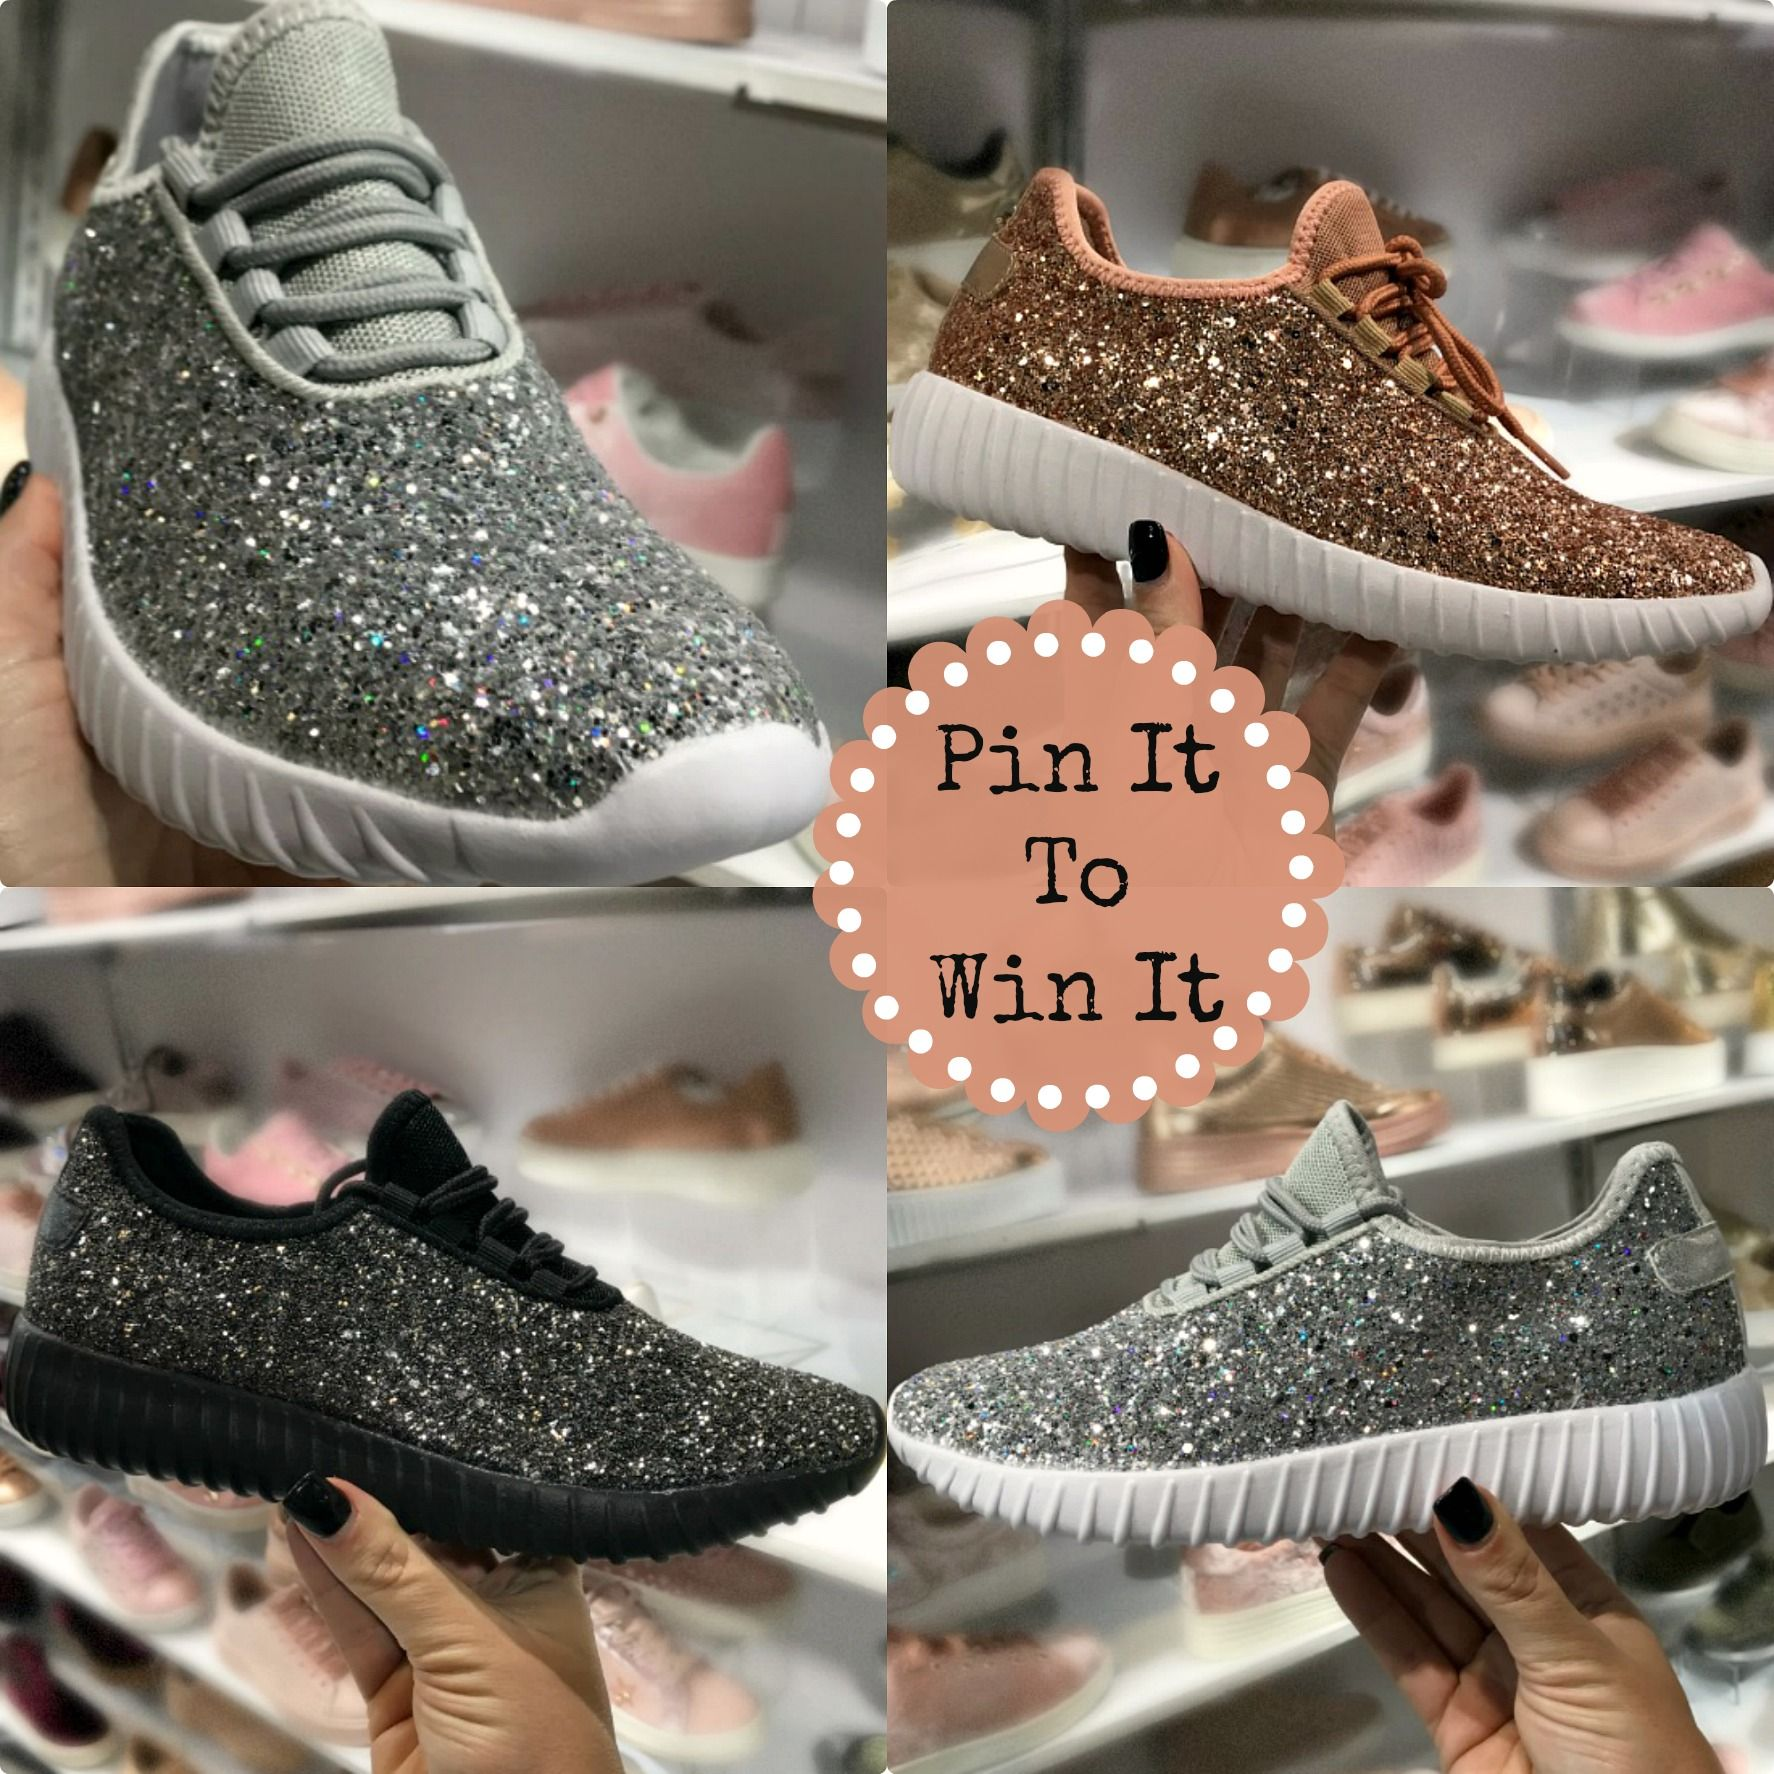 Our gorgeous Glitter Bomb Sneakers make the perfect statement for